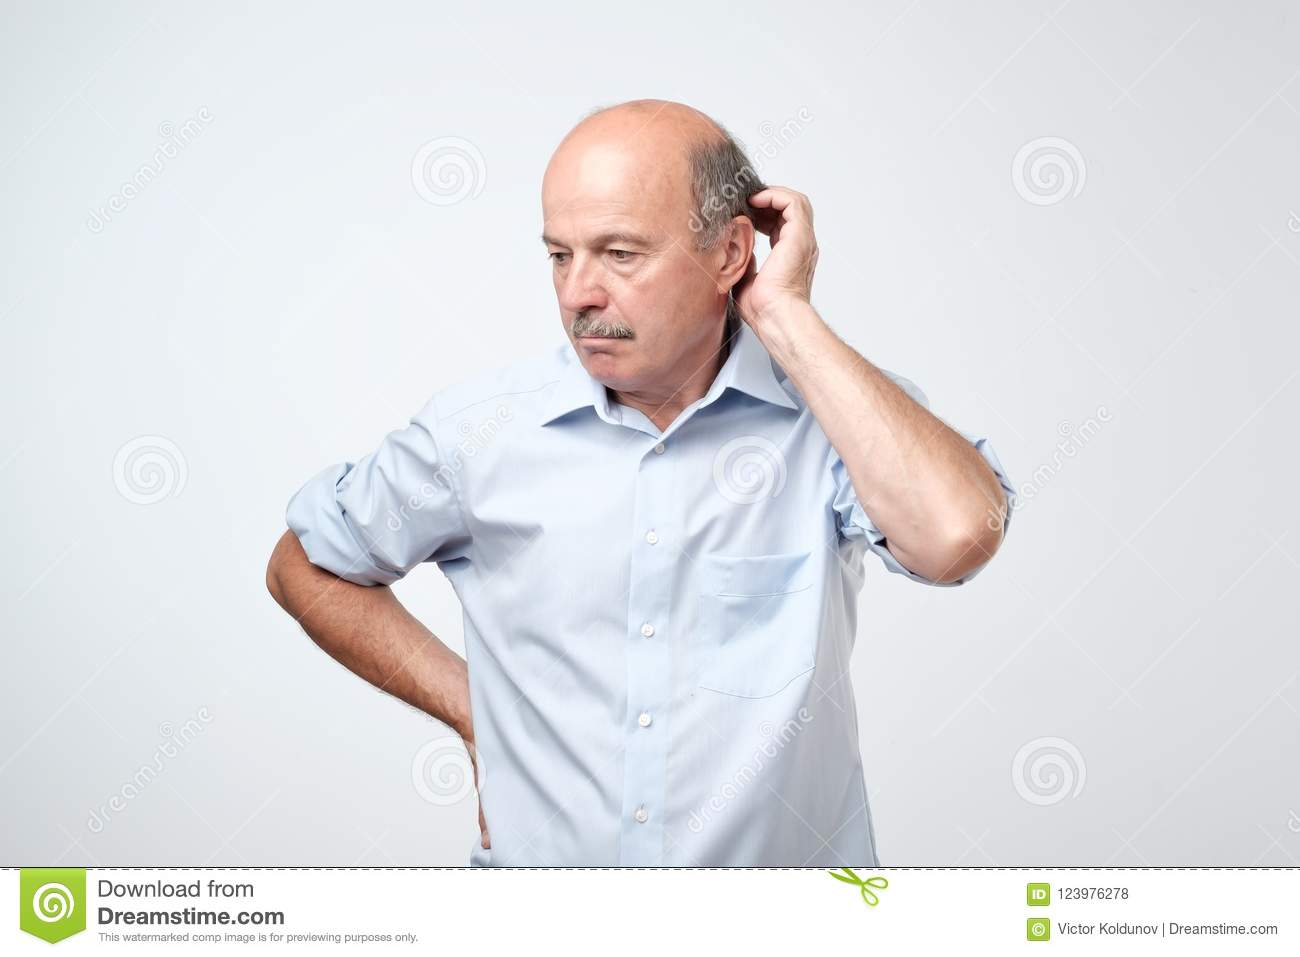 Bald mature man with mustache in blue shirt is suffering from indecision.